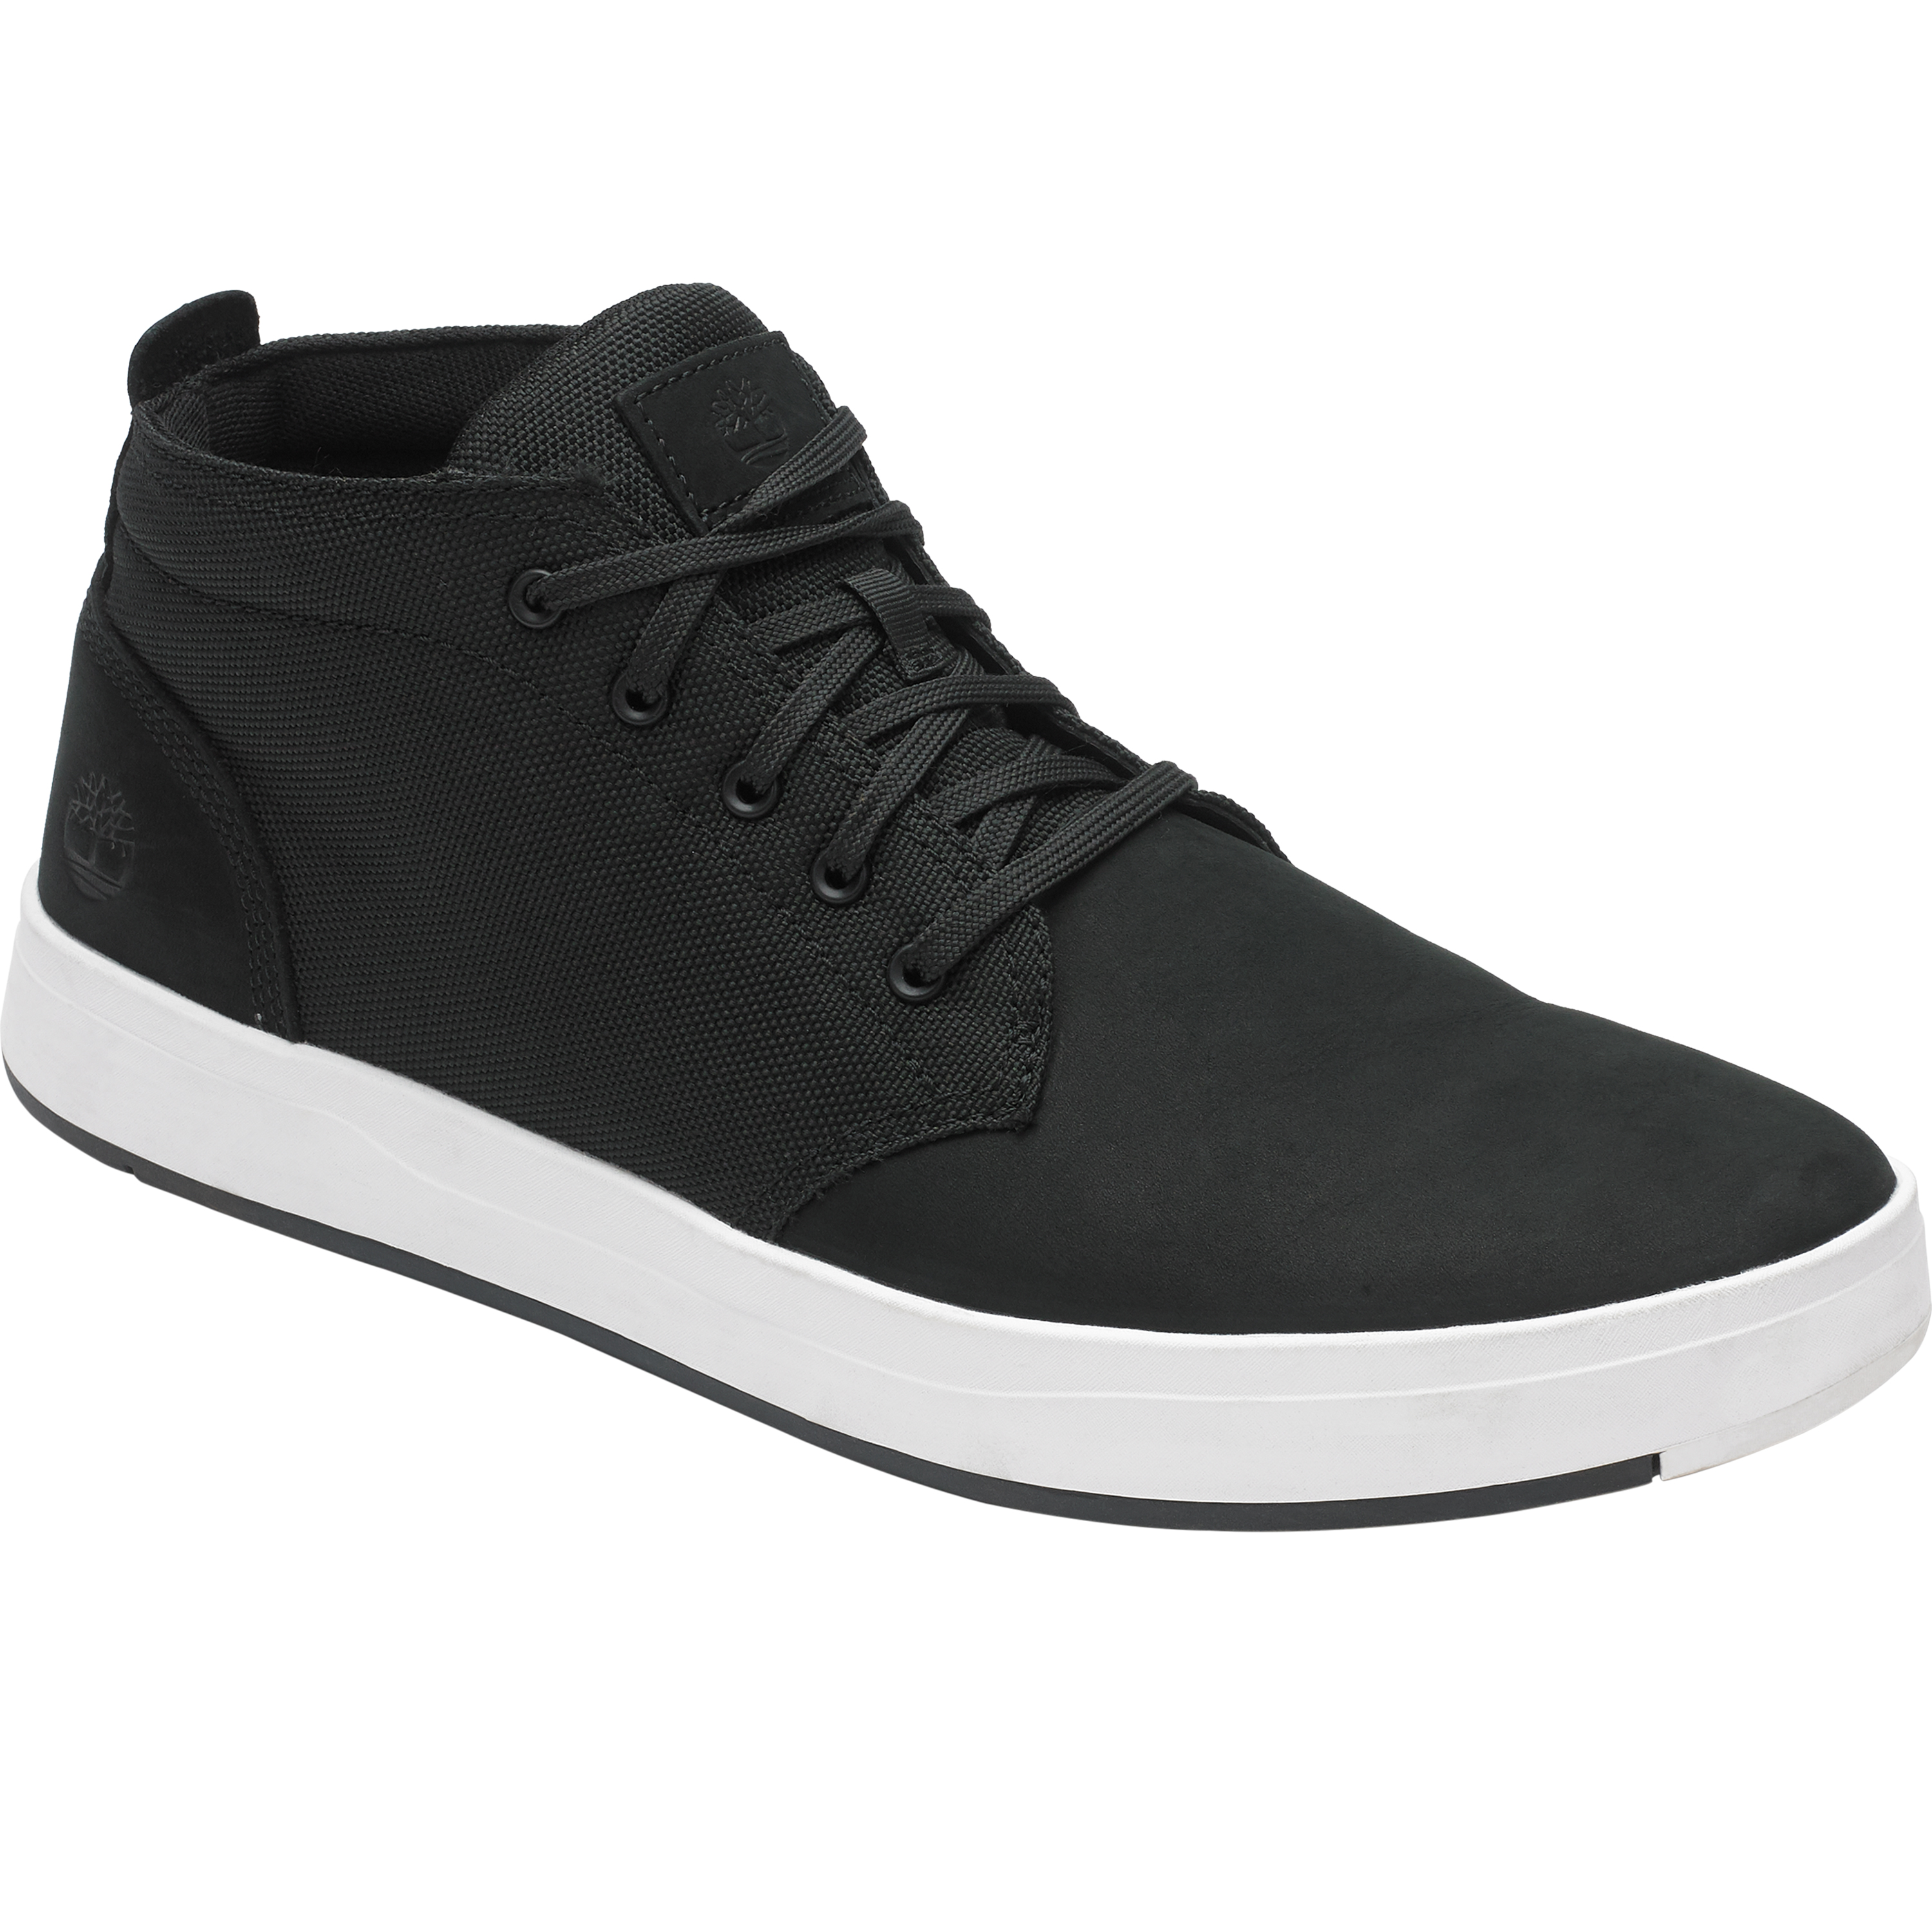 Timberland Davis Square Chukka Shoes in